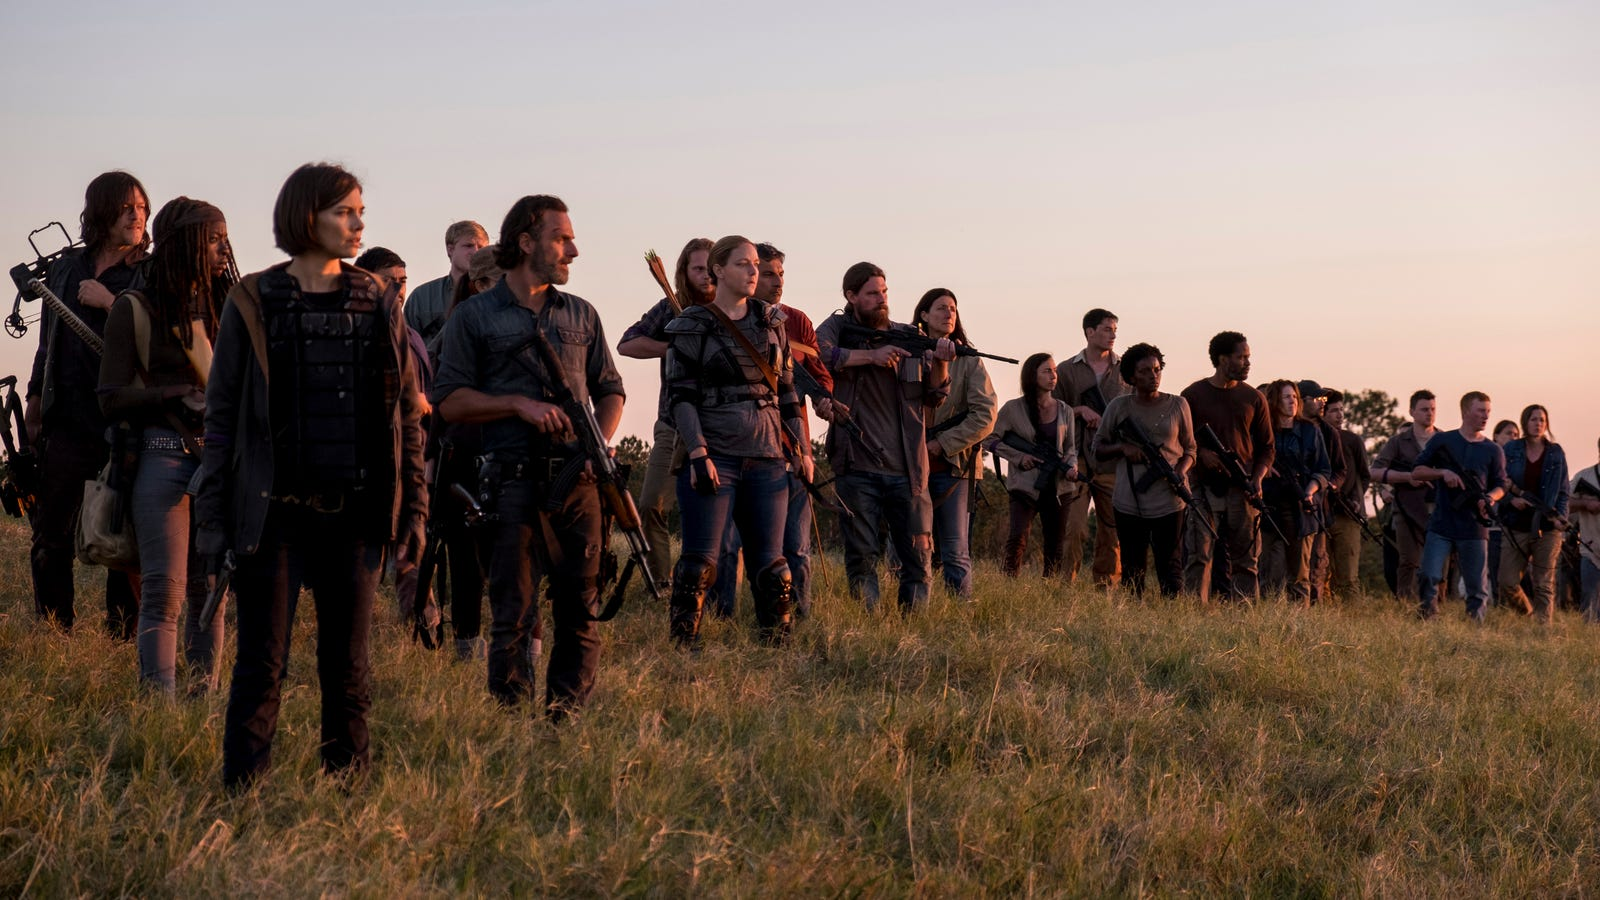 The Walking Dead Didn't Earn Its Season Finale in the Slightest